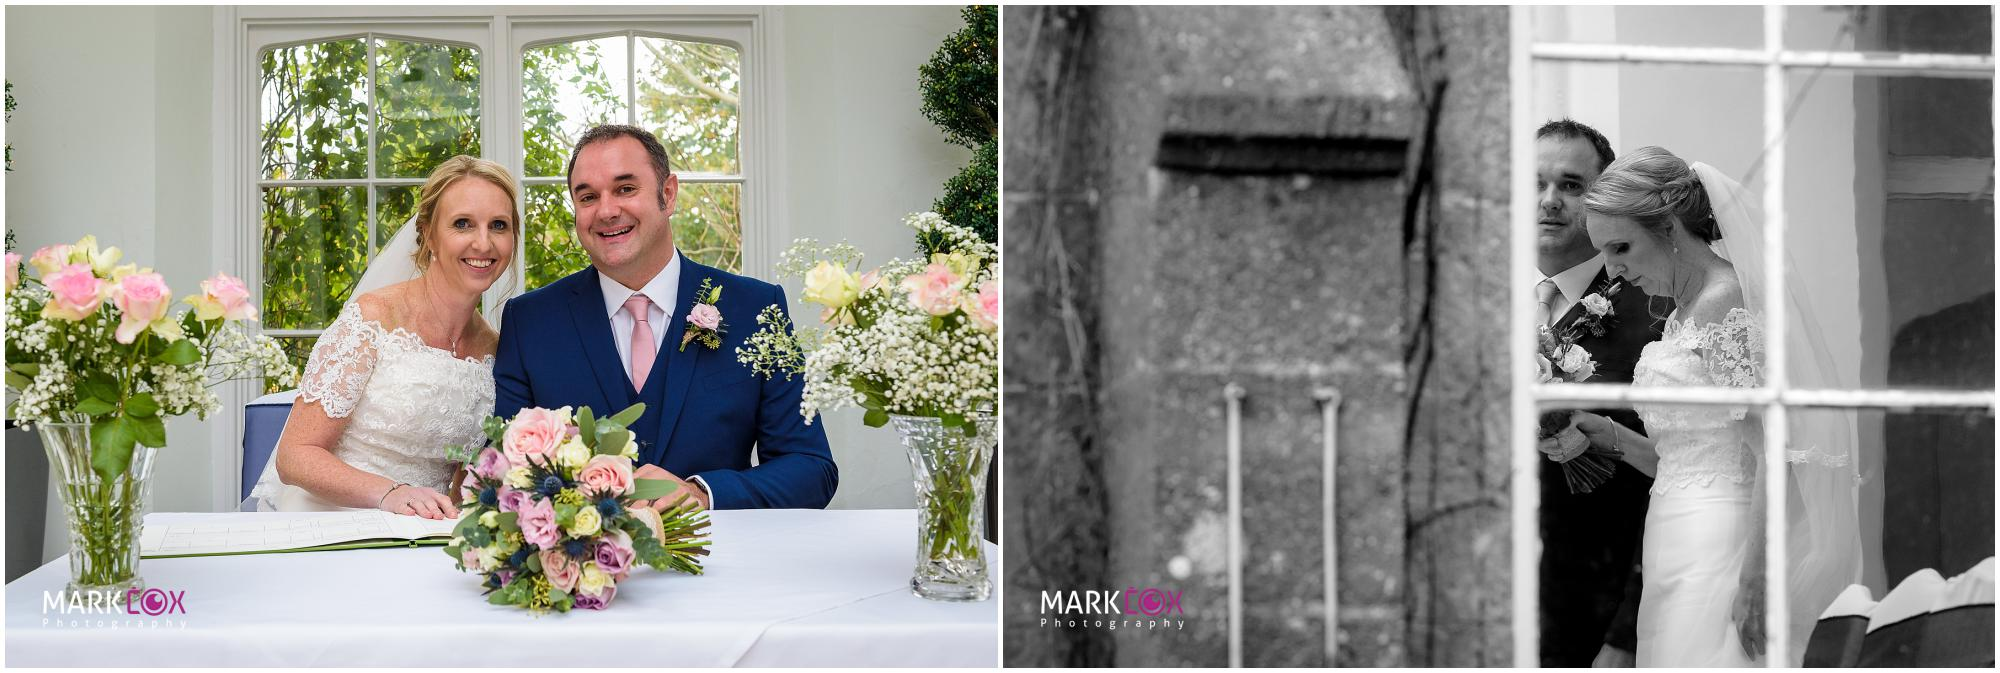 Signing the register at St Audries Park - Somerset Wedding Photographer-001